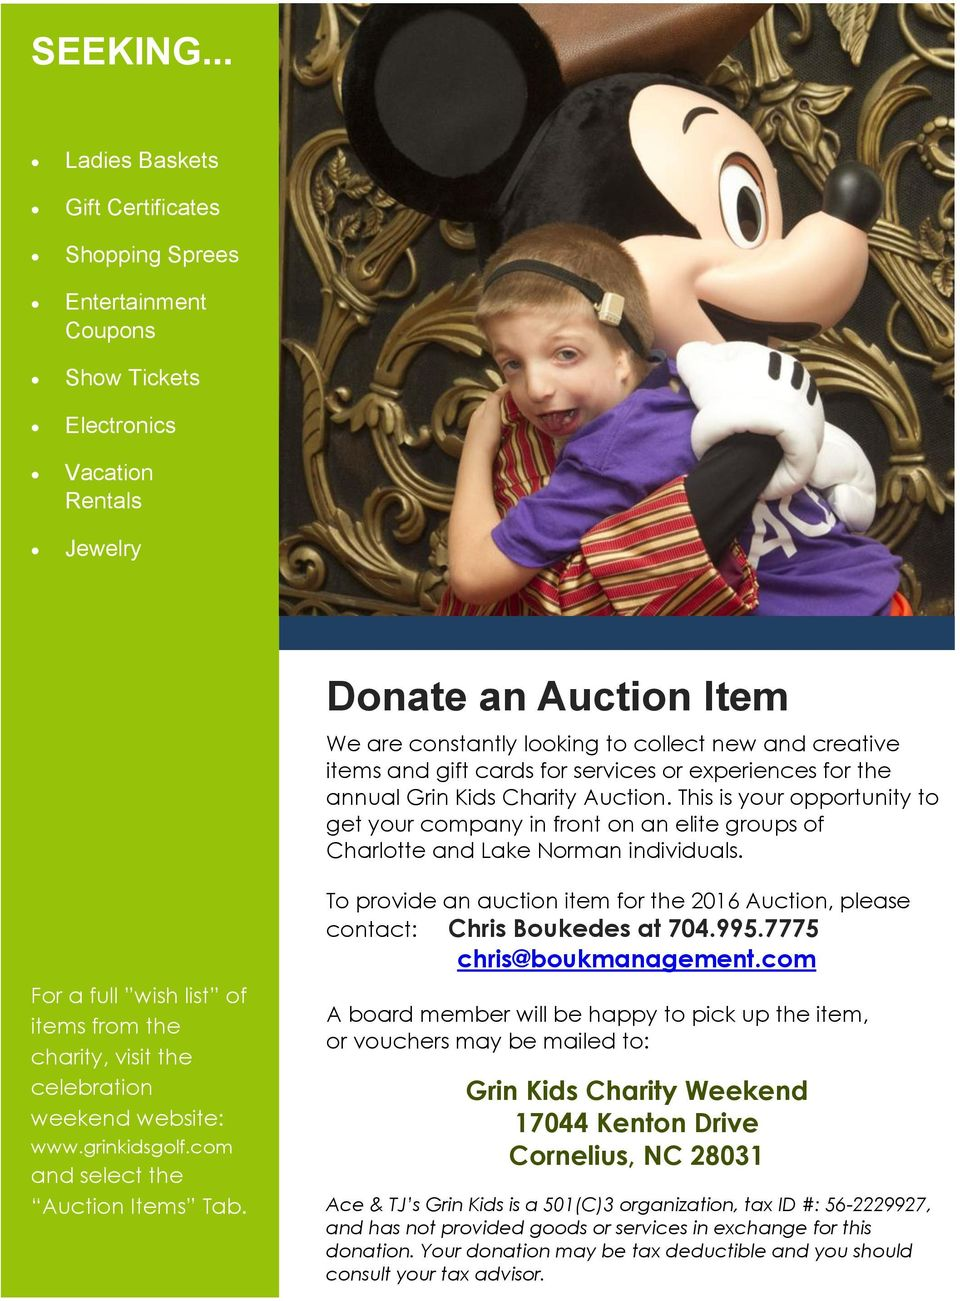 creative items and gift cards for services or experiences for the annual Grin Kids Charity Auction.